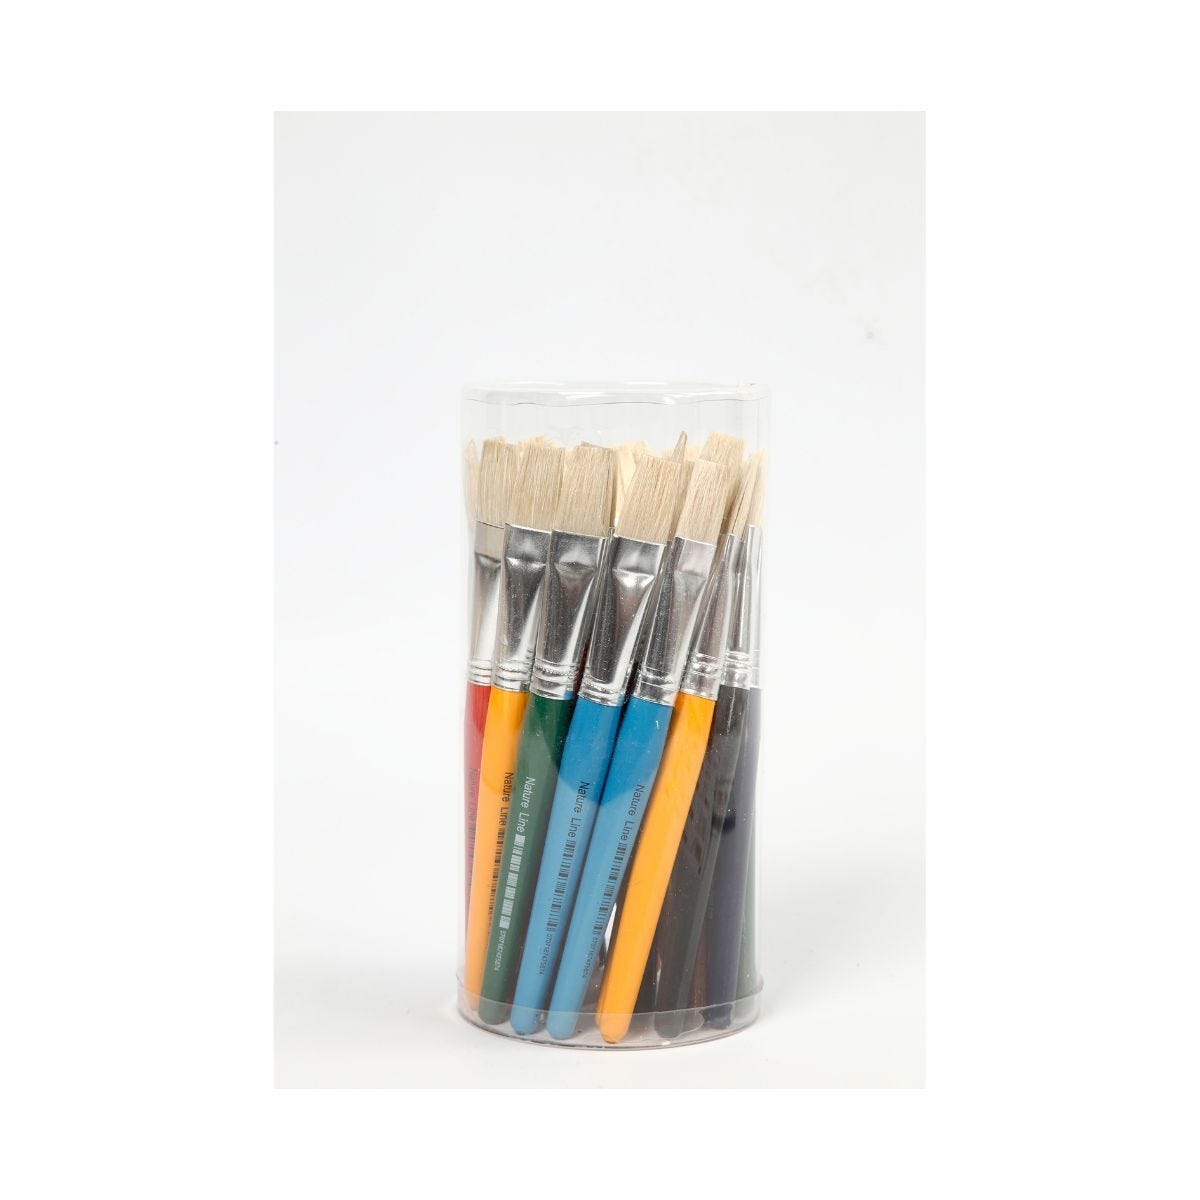 Kids Flat Paint Brushes 15mm Pack of 30